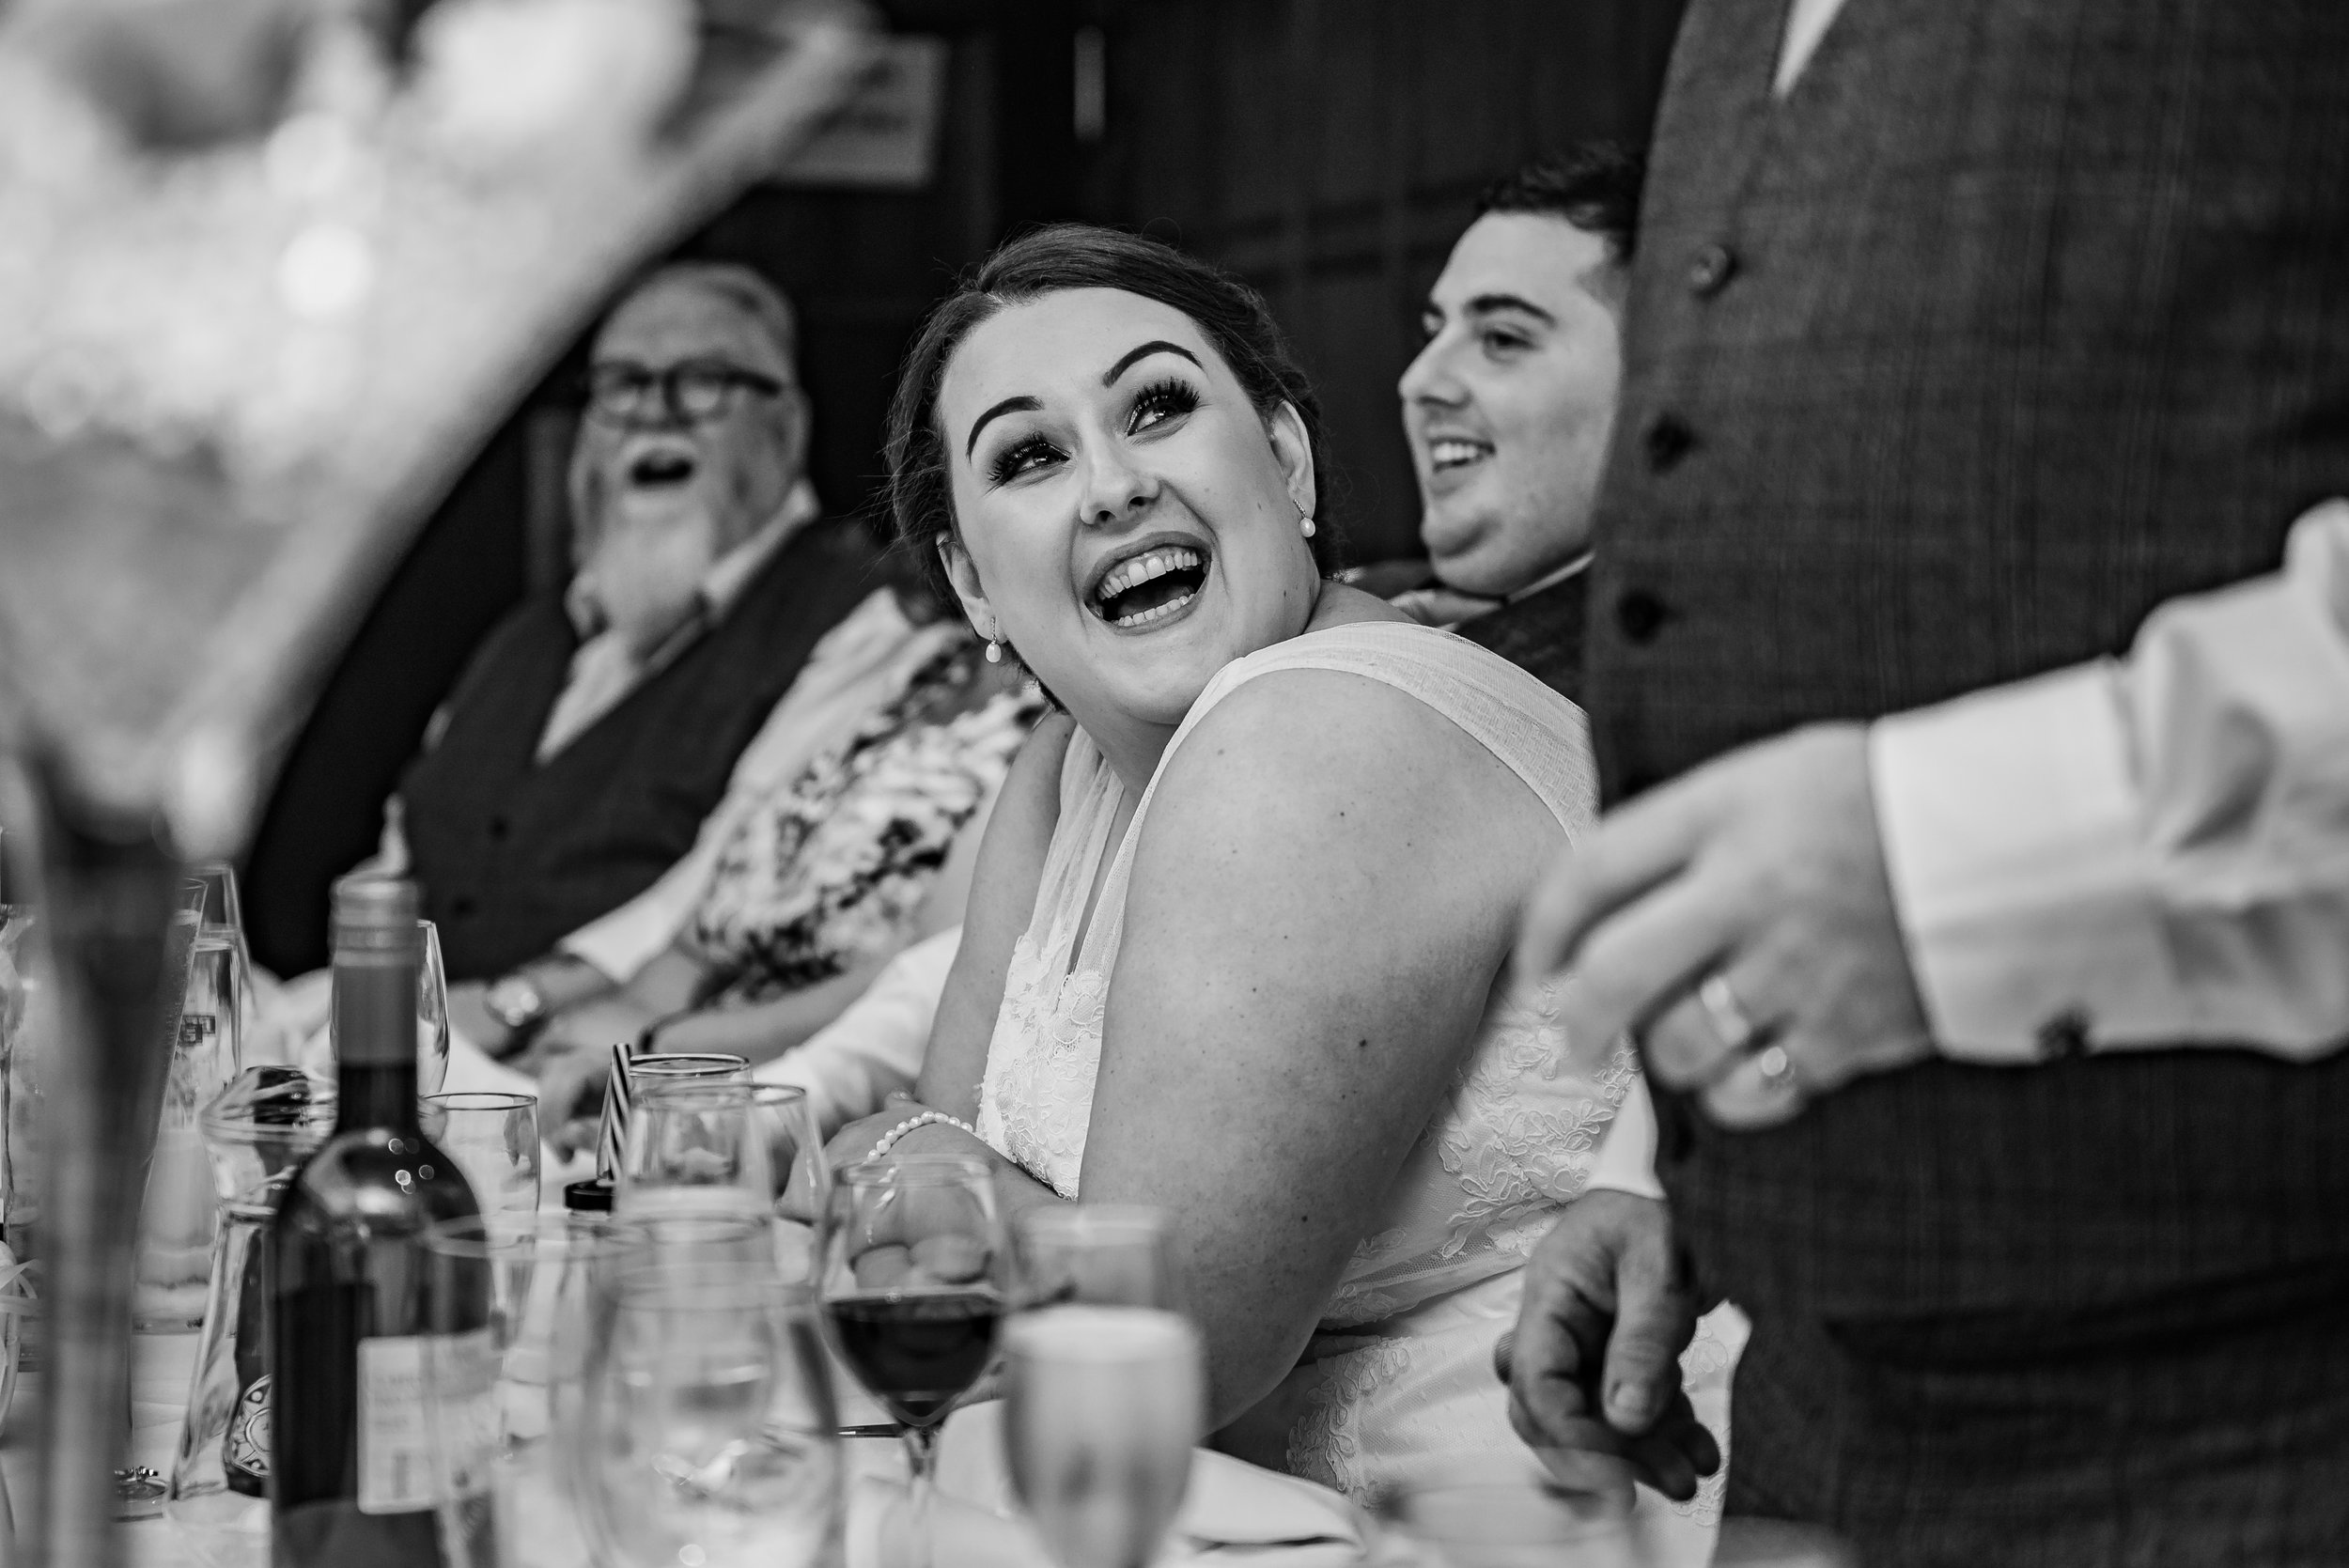 castle Bromwich hall hotel wedding photography natural black and white photography speeches